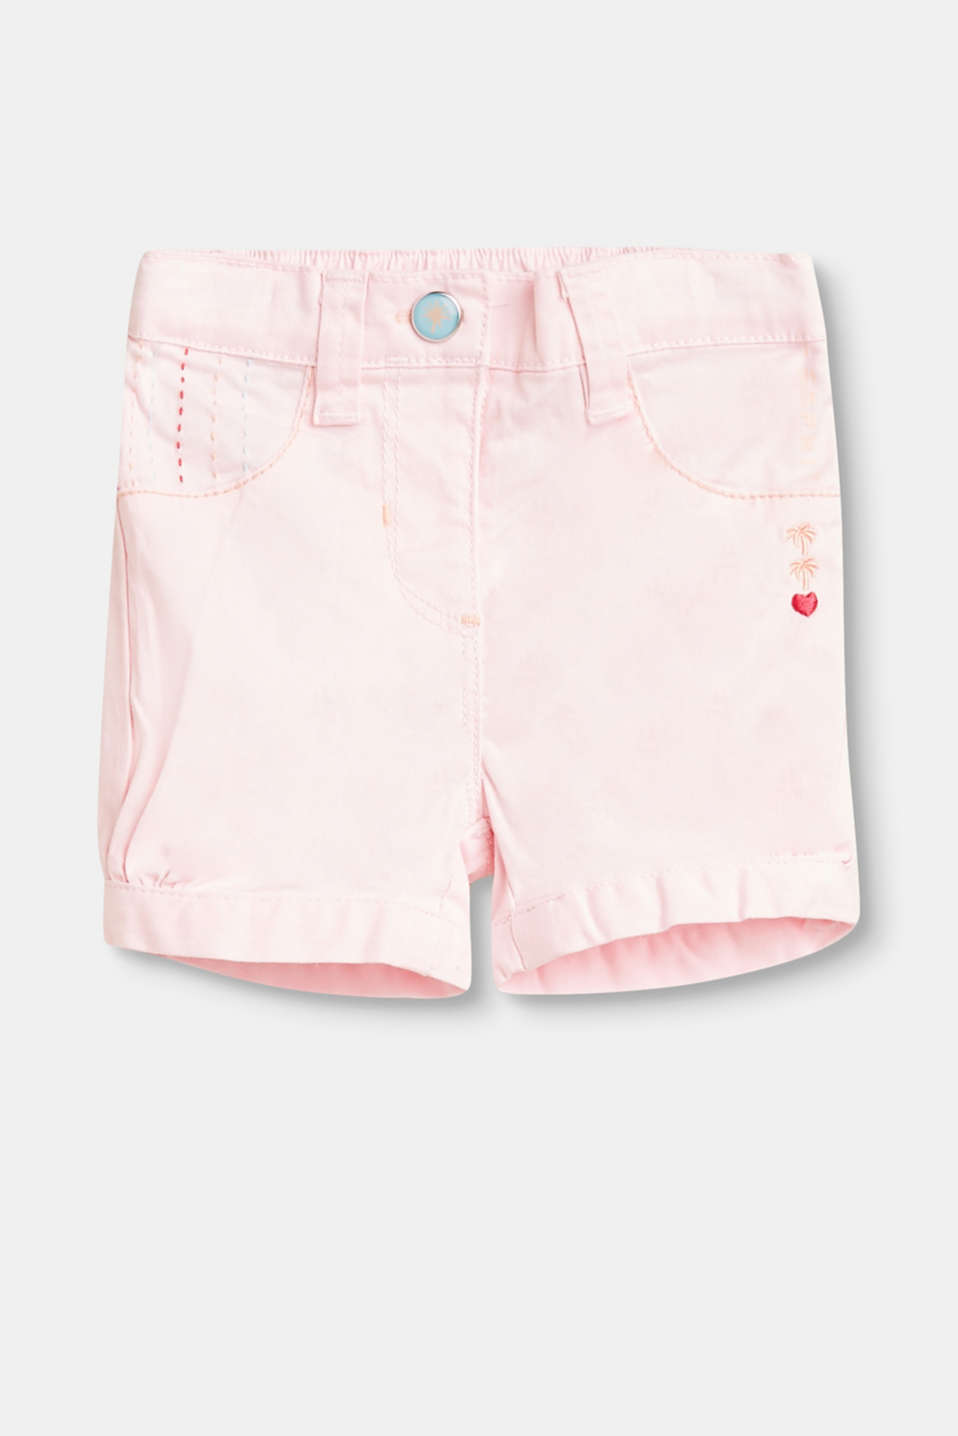 Esprit - Stretchige Baumwoll-Shorts mit Stickerei